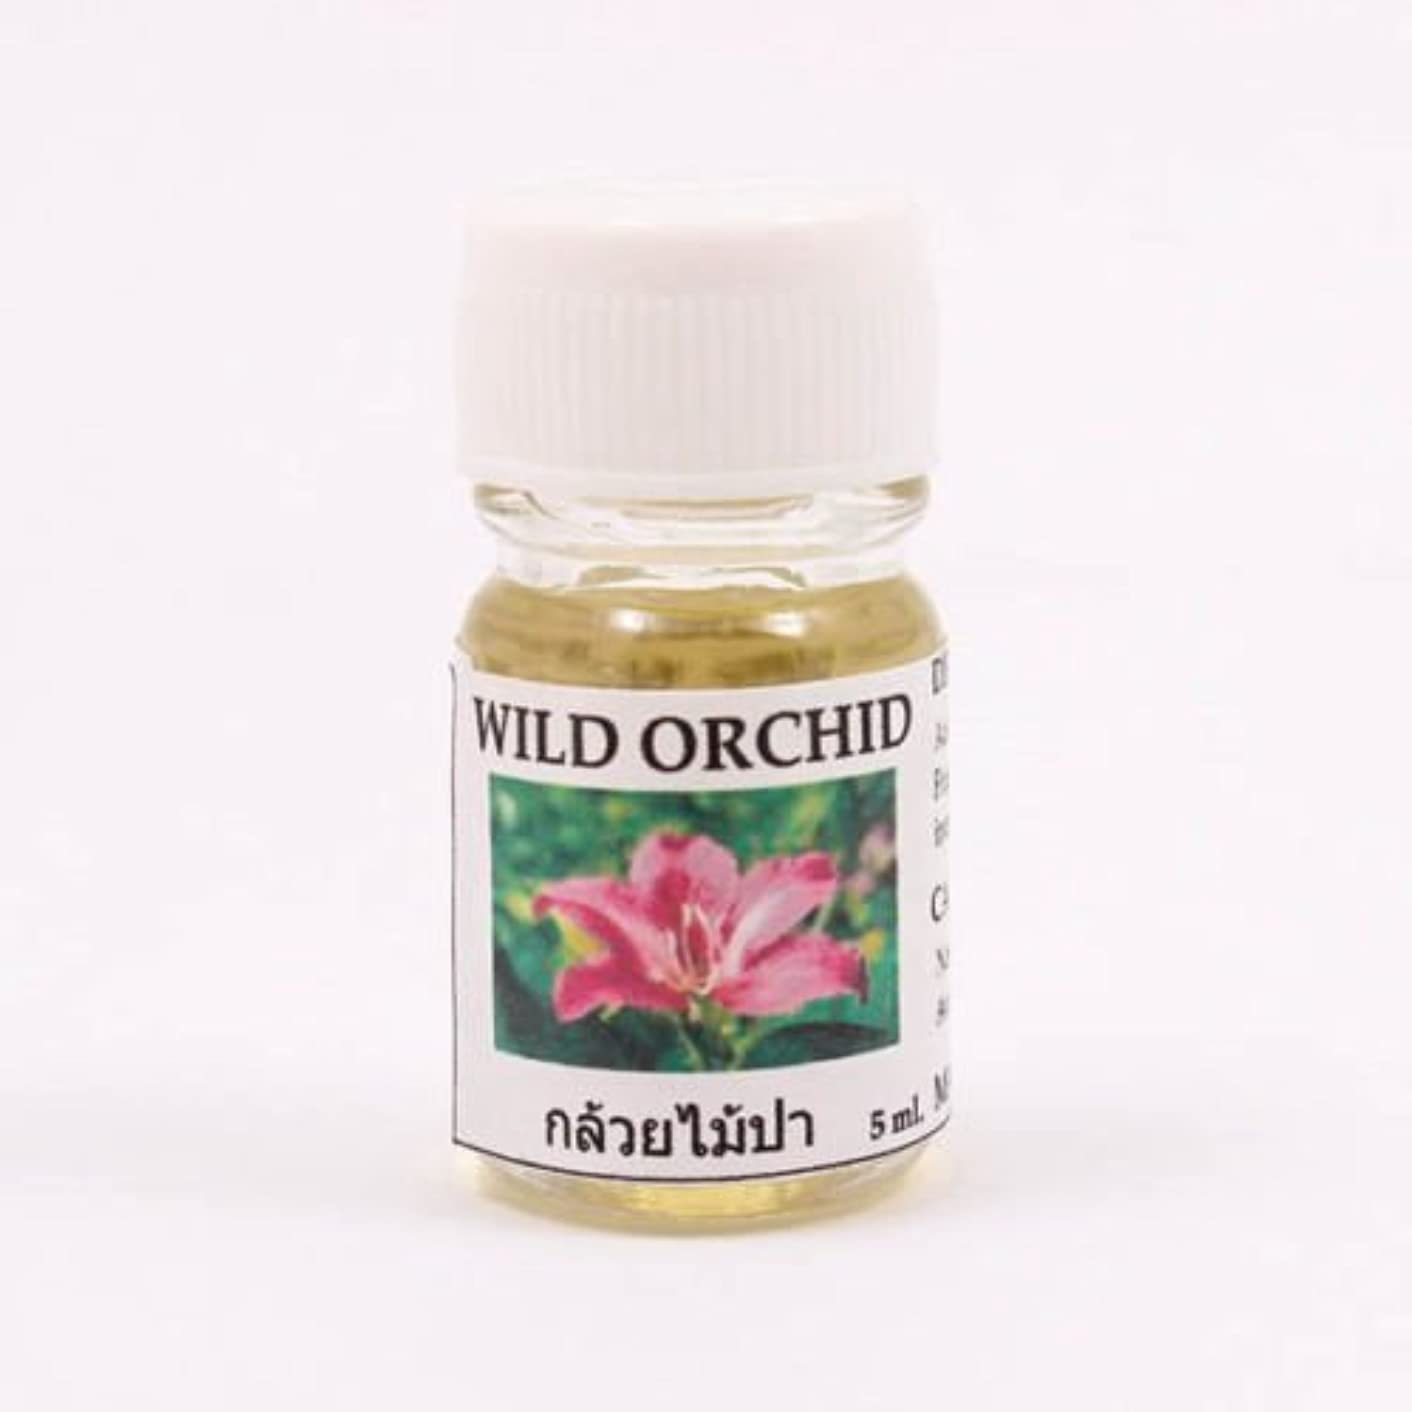 二十実験室脅迫6X Wild Orchid Fragrance Essential Oil 5ML. (cc) Diffuser Burner Therapy